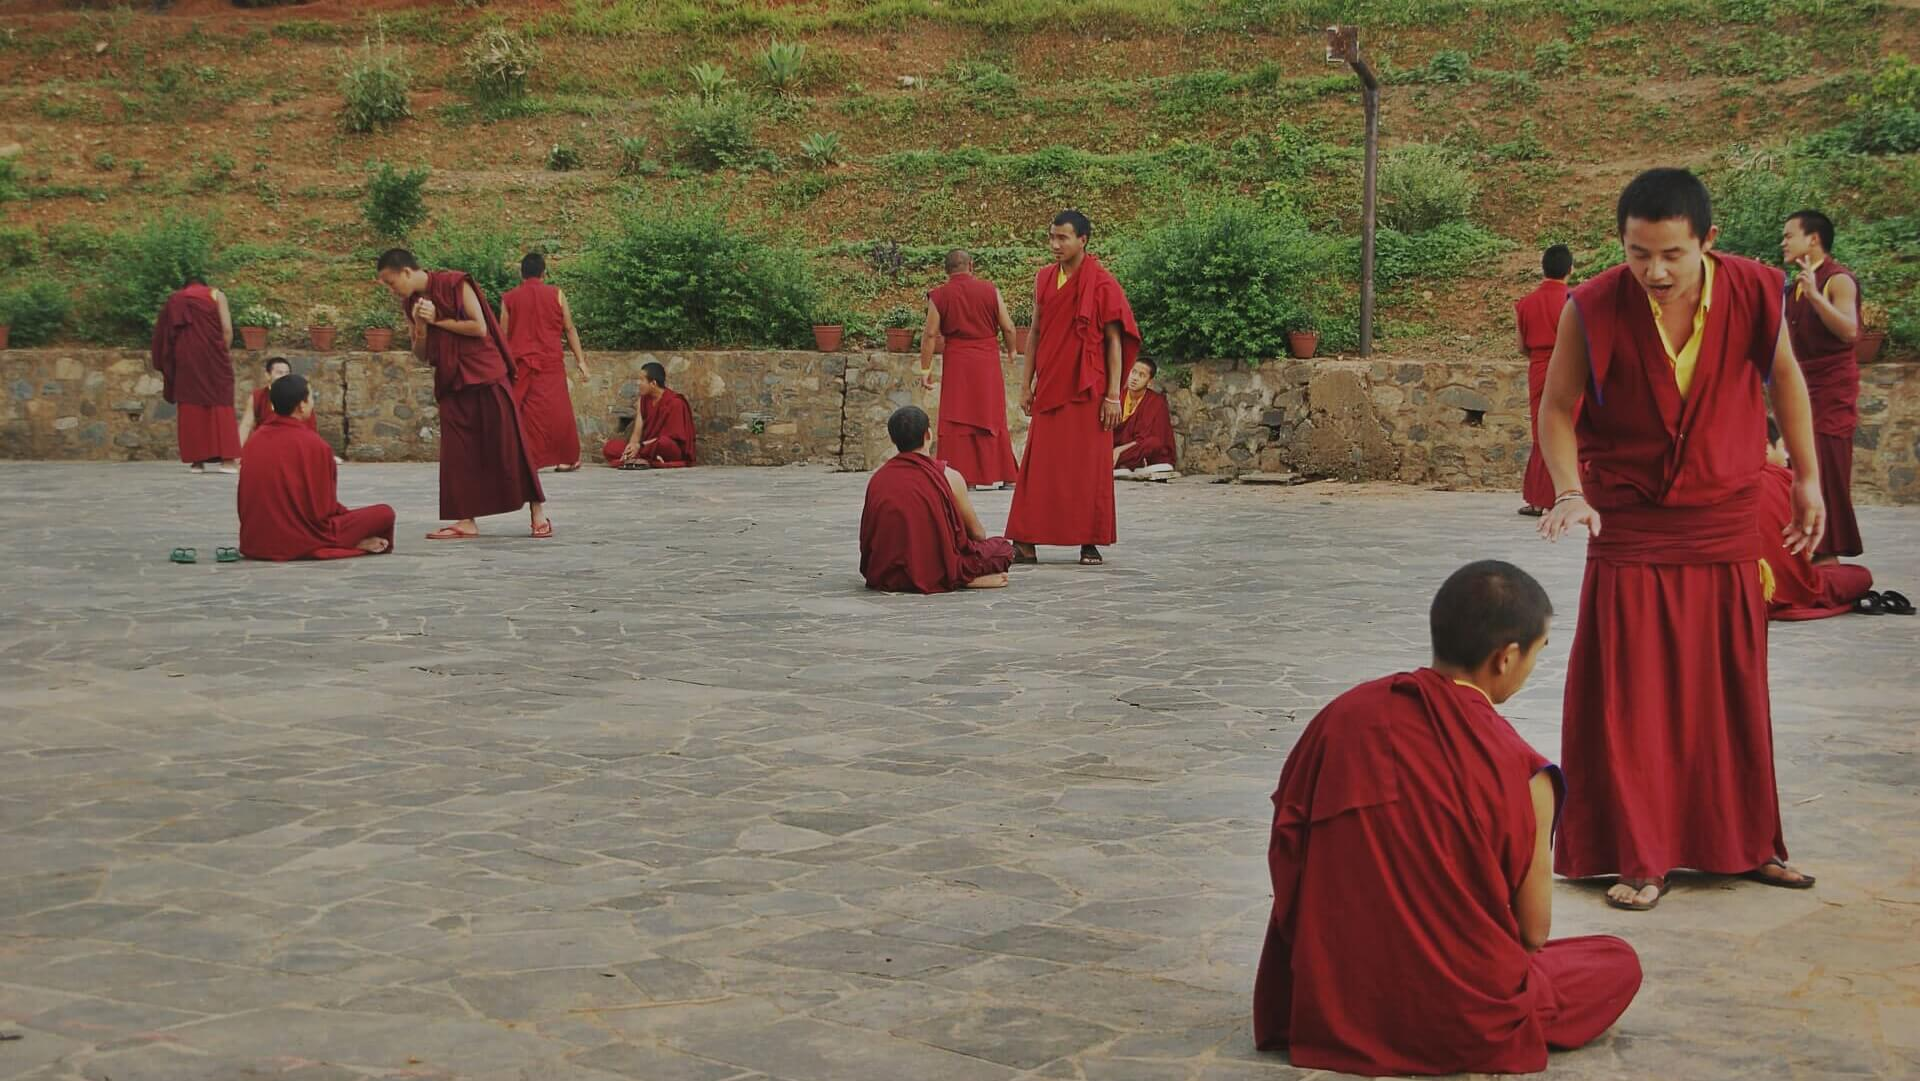 Monks Meditating in the Peaceful Park